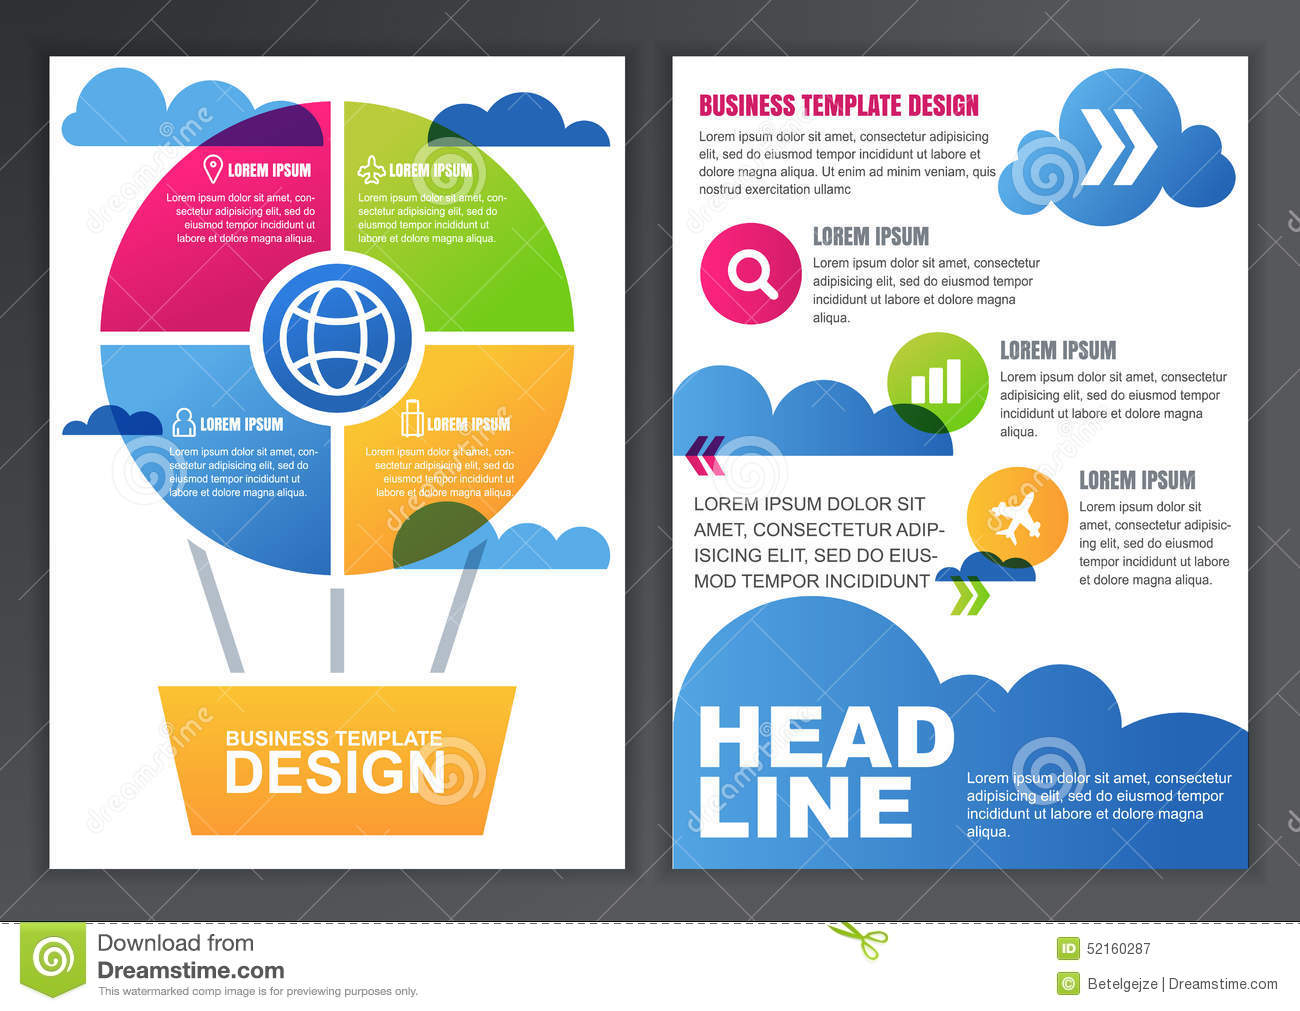 Poster design template free - Poster Design Free Template Free Poster Design Application Set Of Vector Design Template For Business